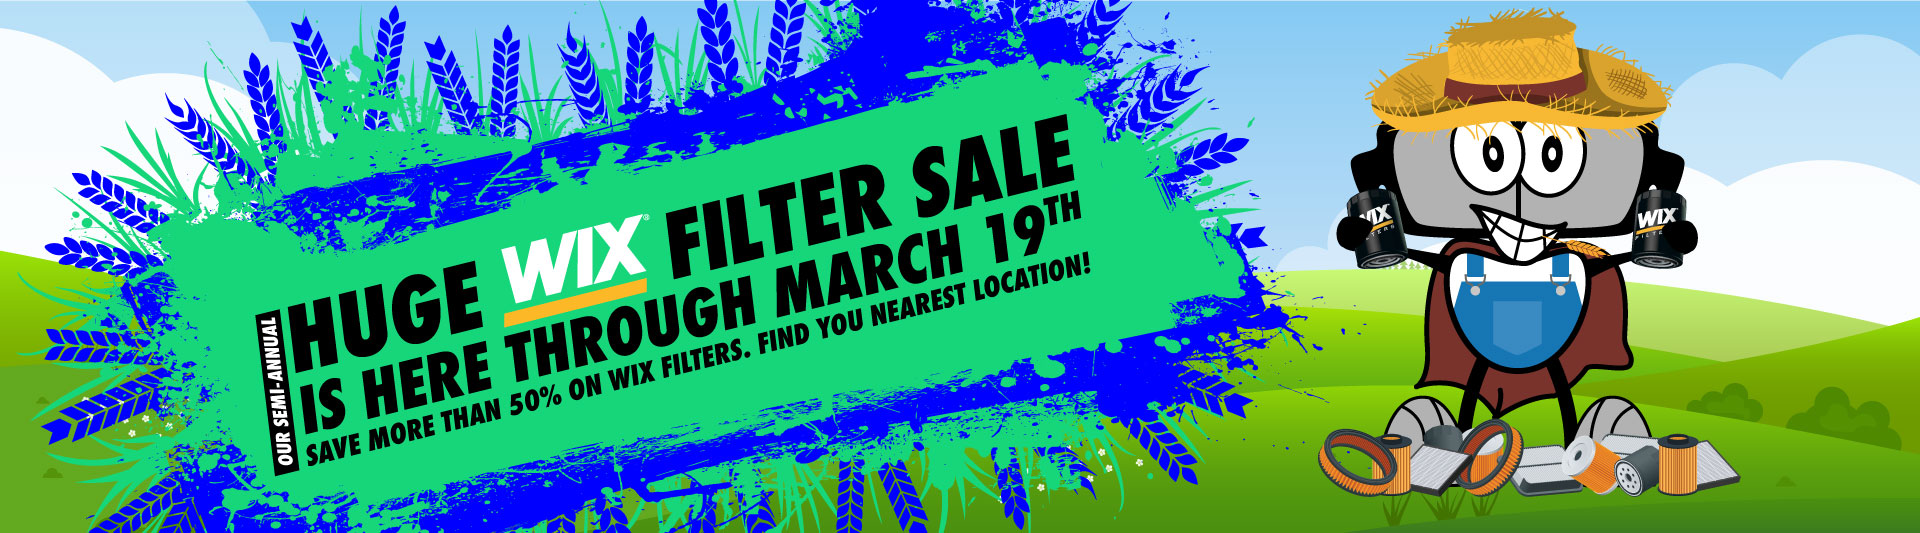 Our huge Wix Filter sale is back March 8th through 19th